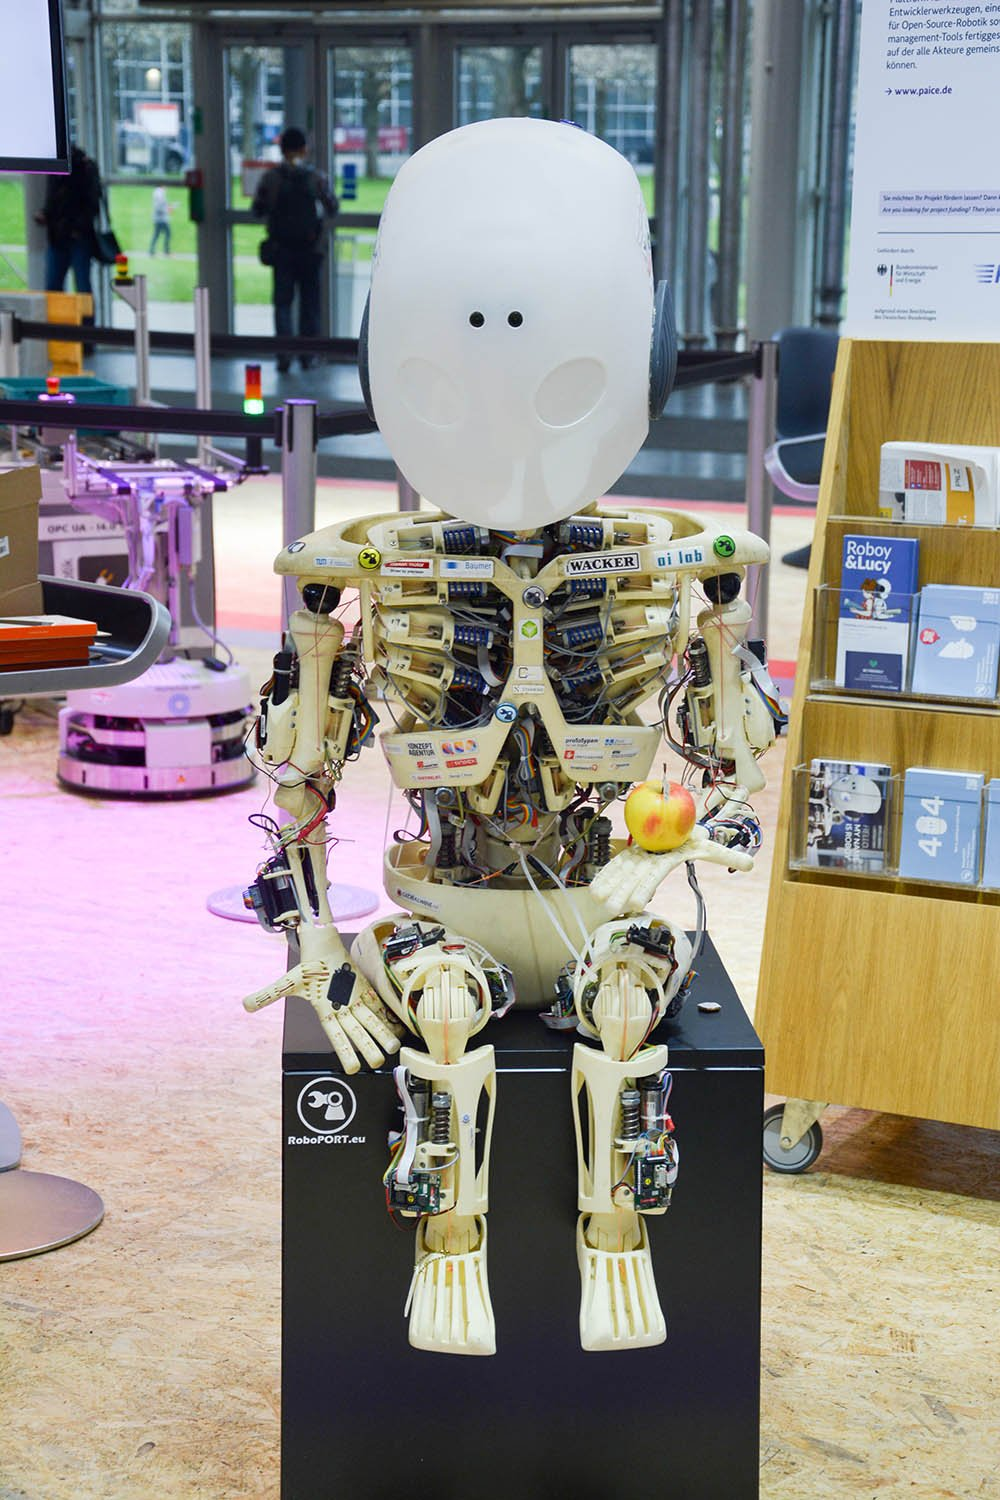 nowe-technologie-hannover-messe-42